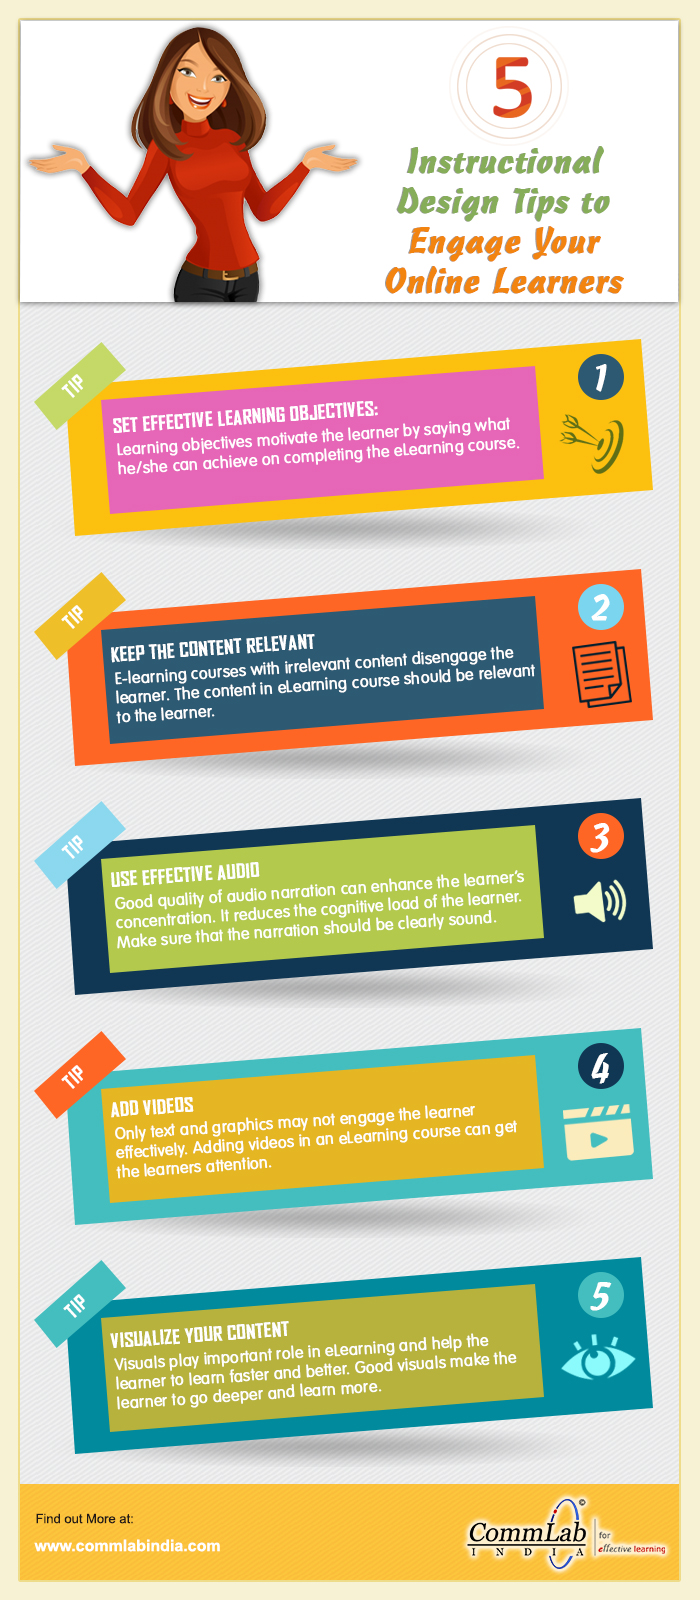 5 Instructional Design Tips to Engage Online Learners - An Info-graphic